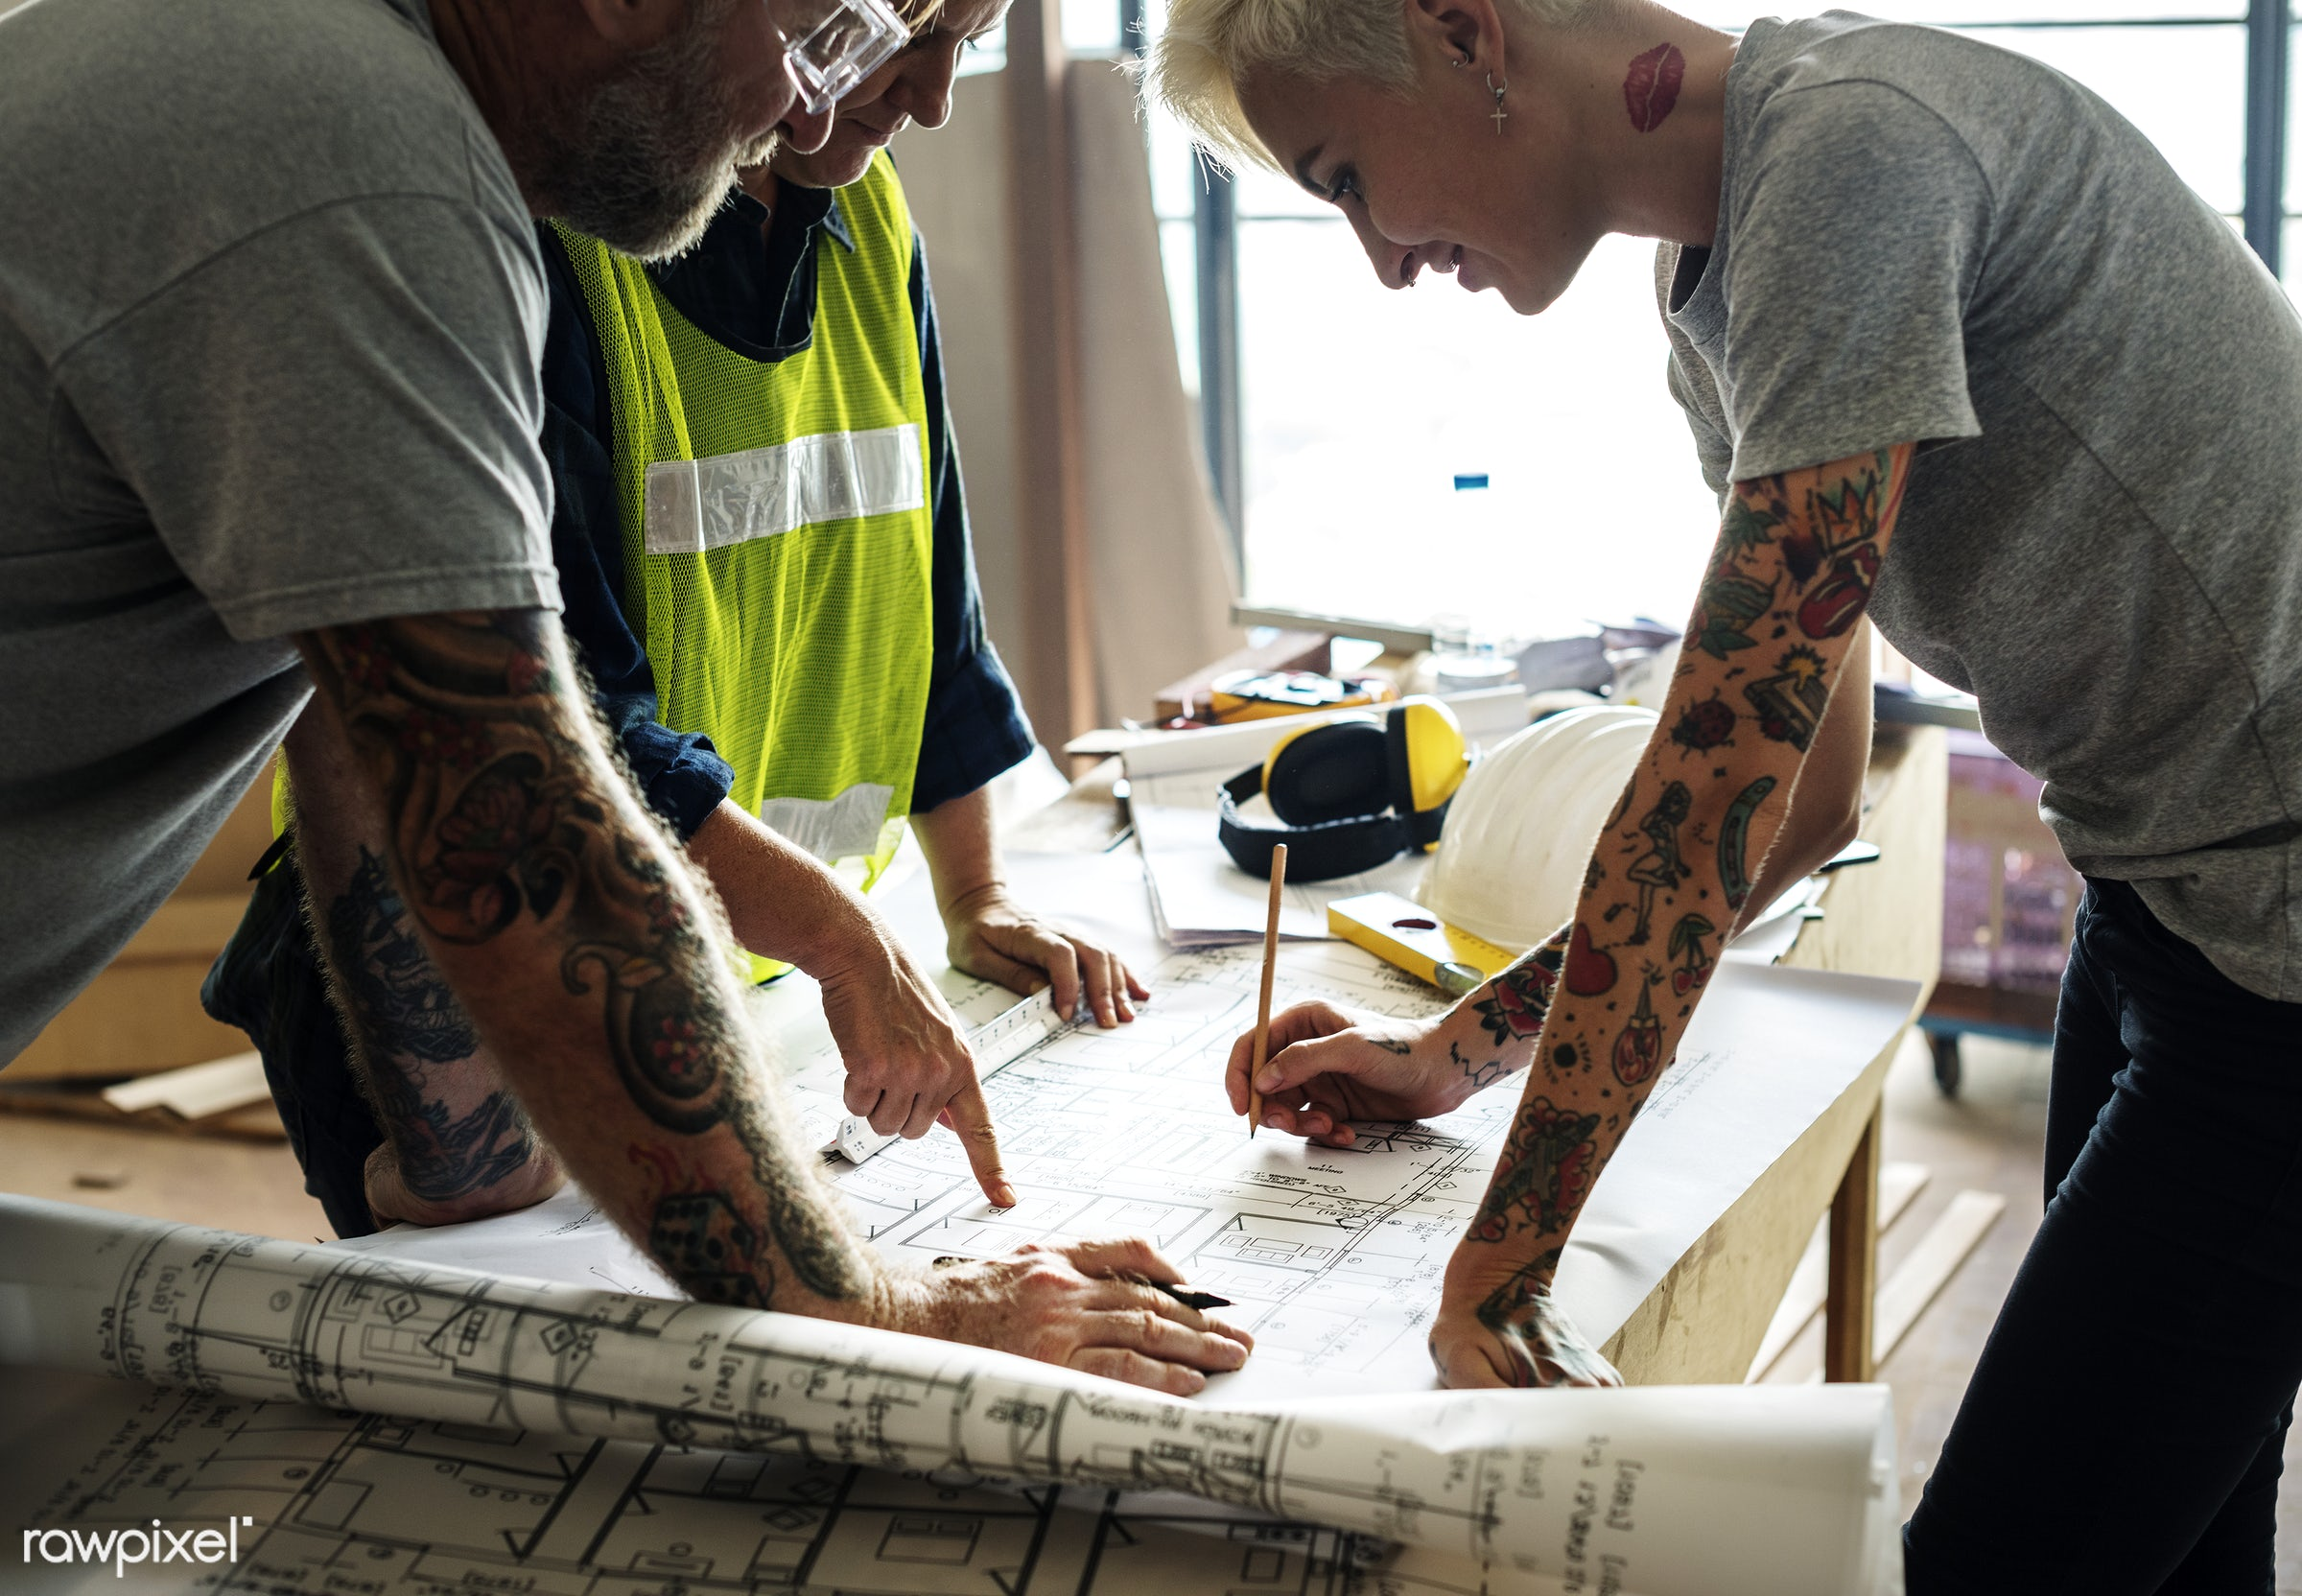 interior, model, paper, architecture, build, engineering, drawing, document, tattoo, construction, man, structure, engineer...